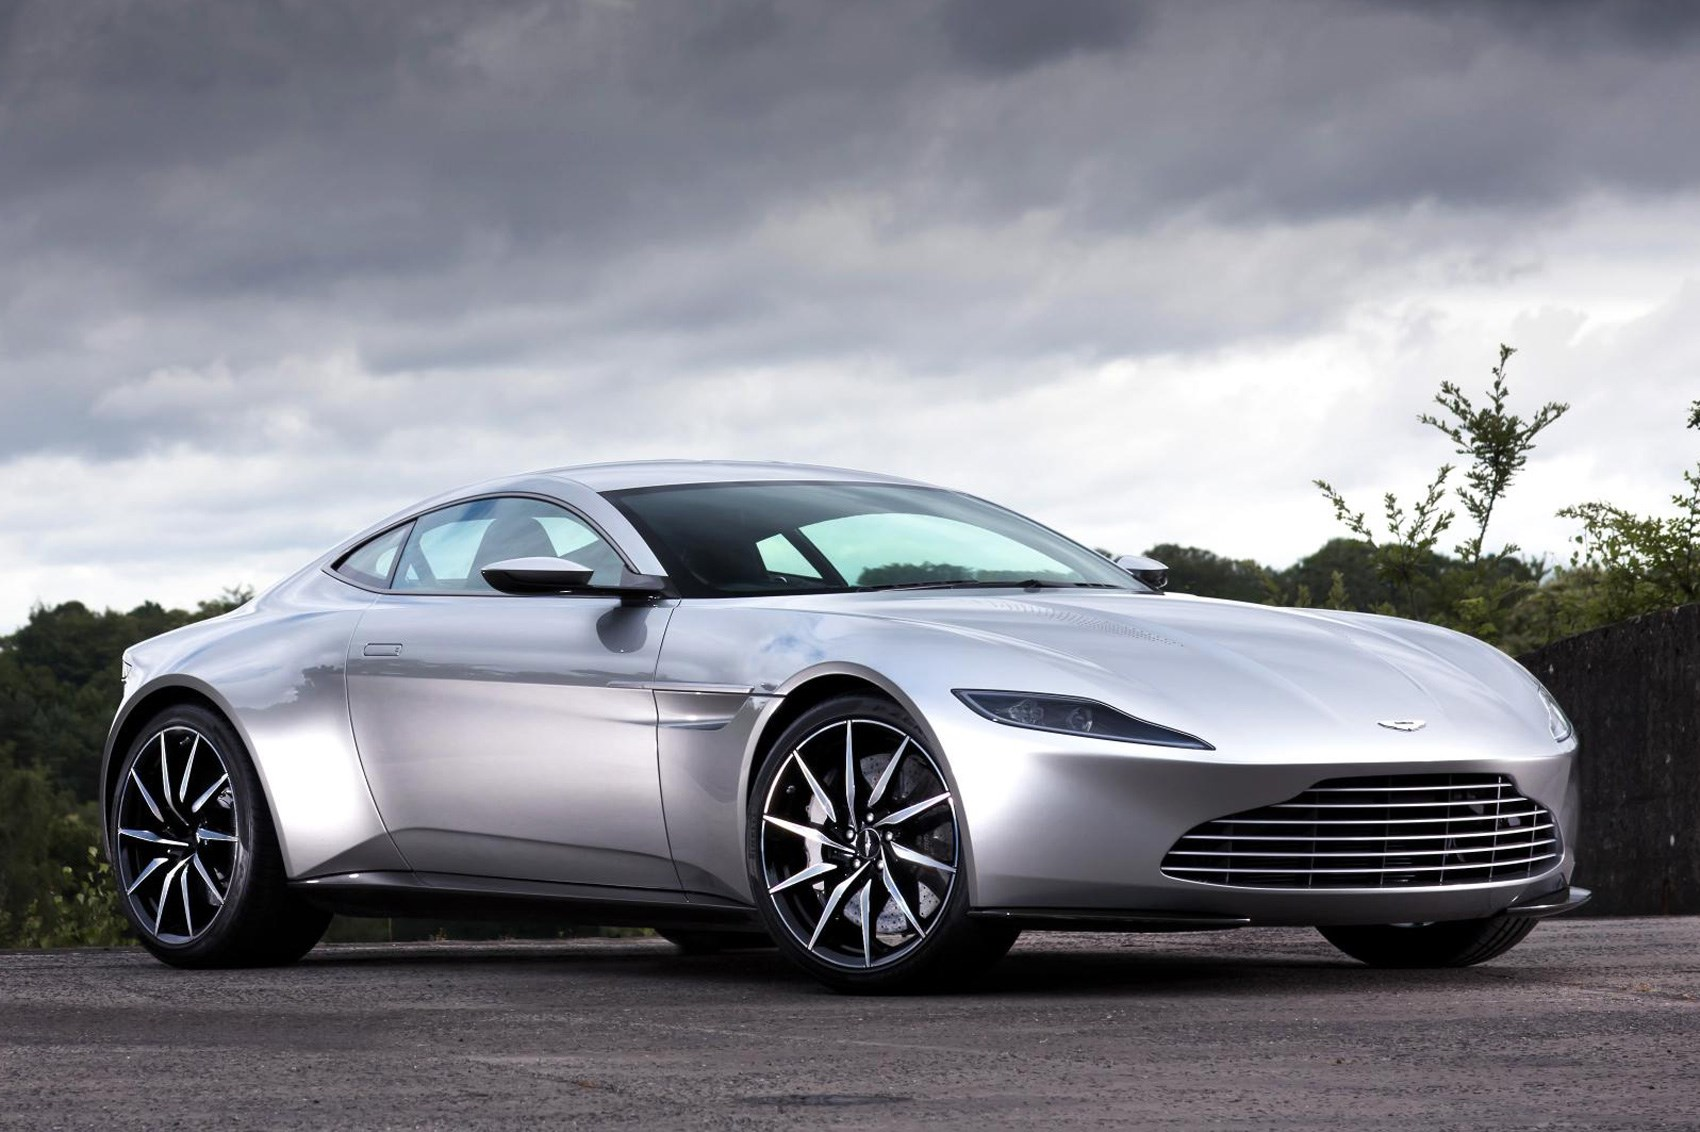 New 2018 Aston Martin Vantage Pics, Specs, Prices Car